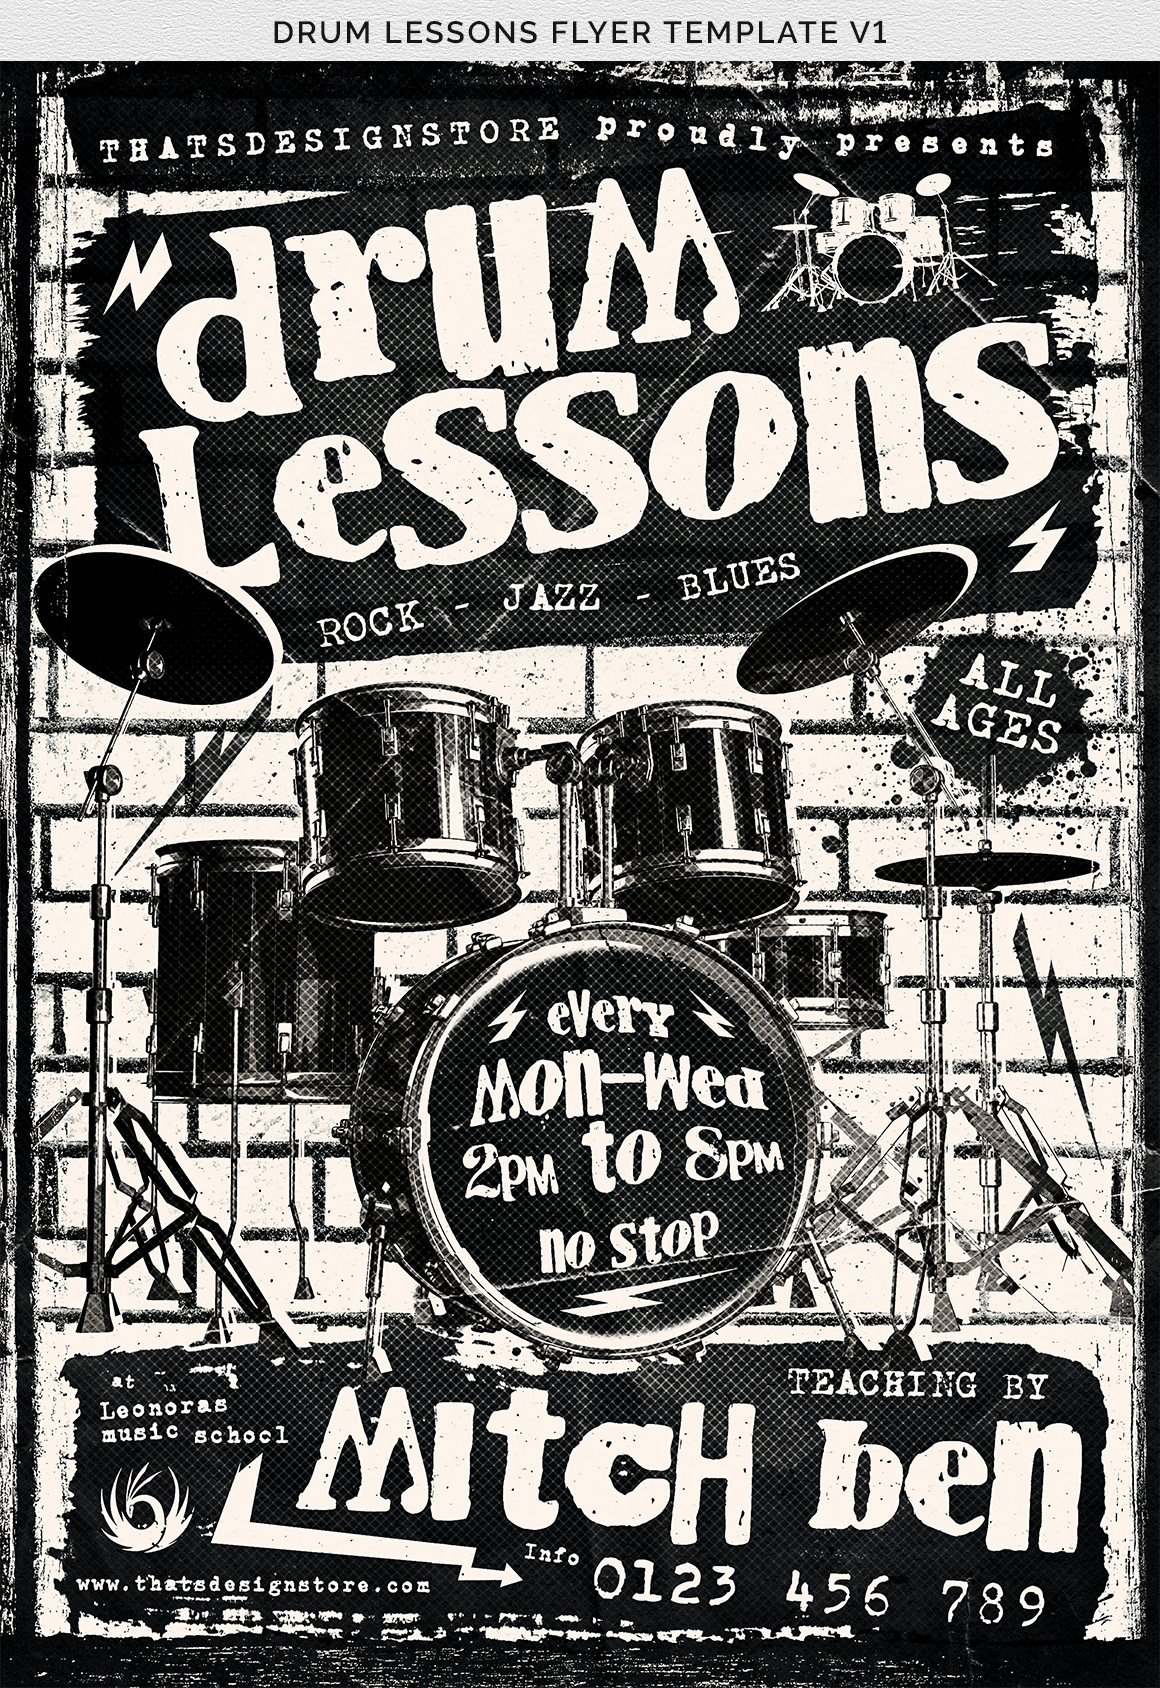 Drum Lessons Flyer Template V1 example image 8